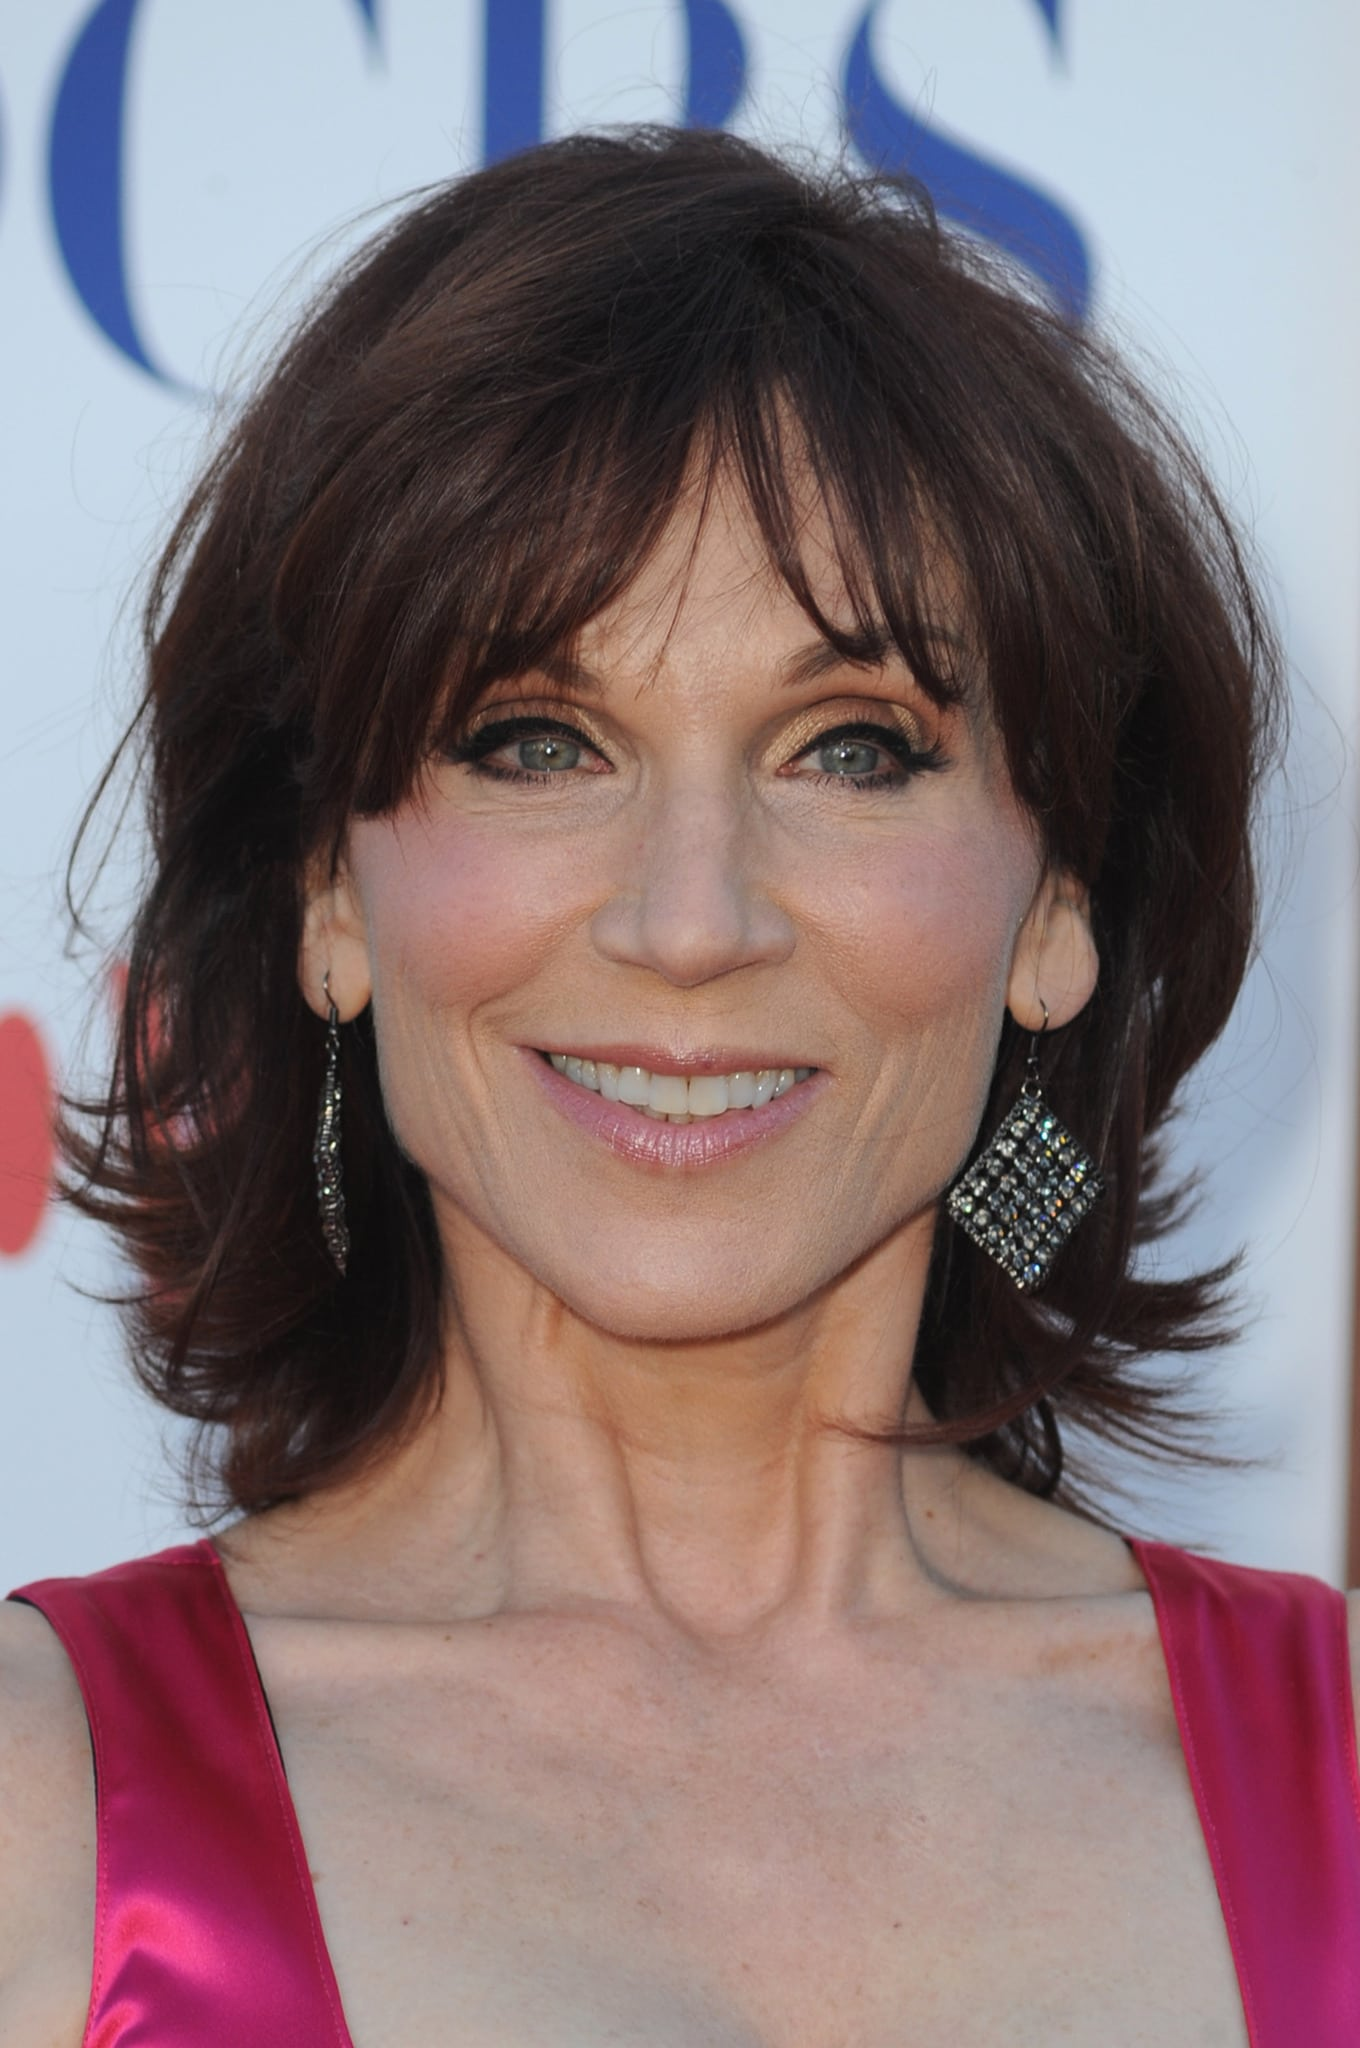 Marilu Henner Americsn Actress, Author, Producer, Podcaster